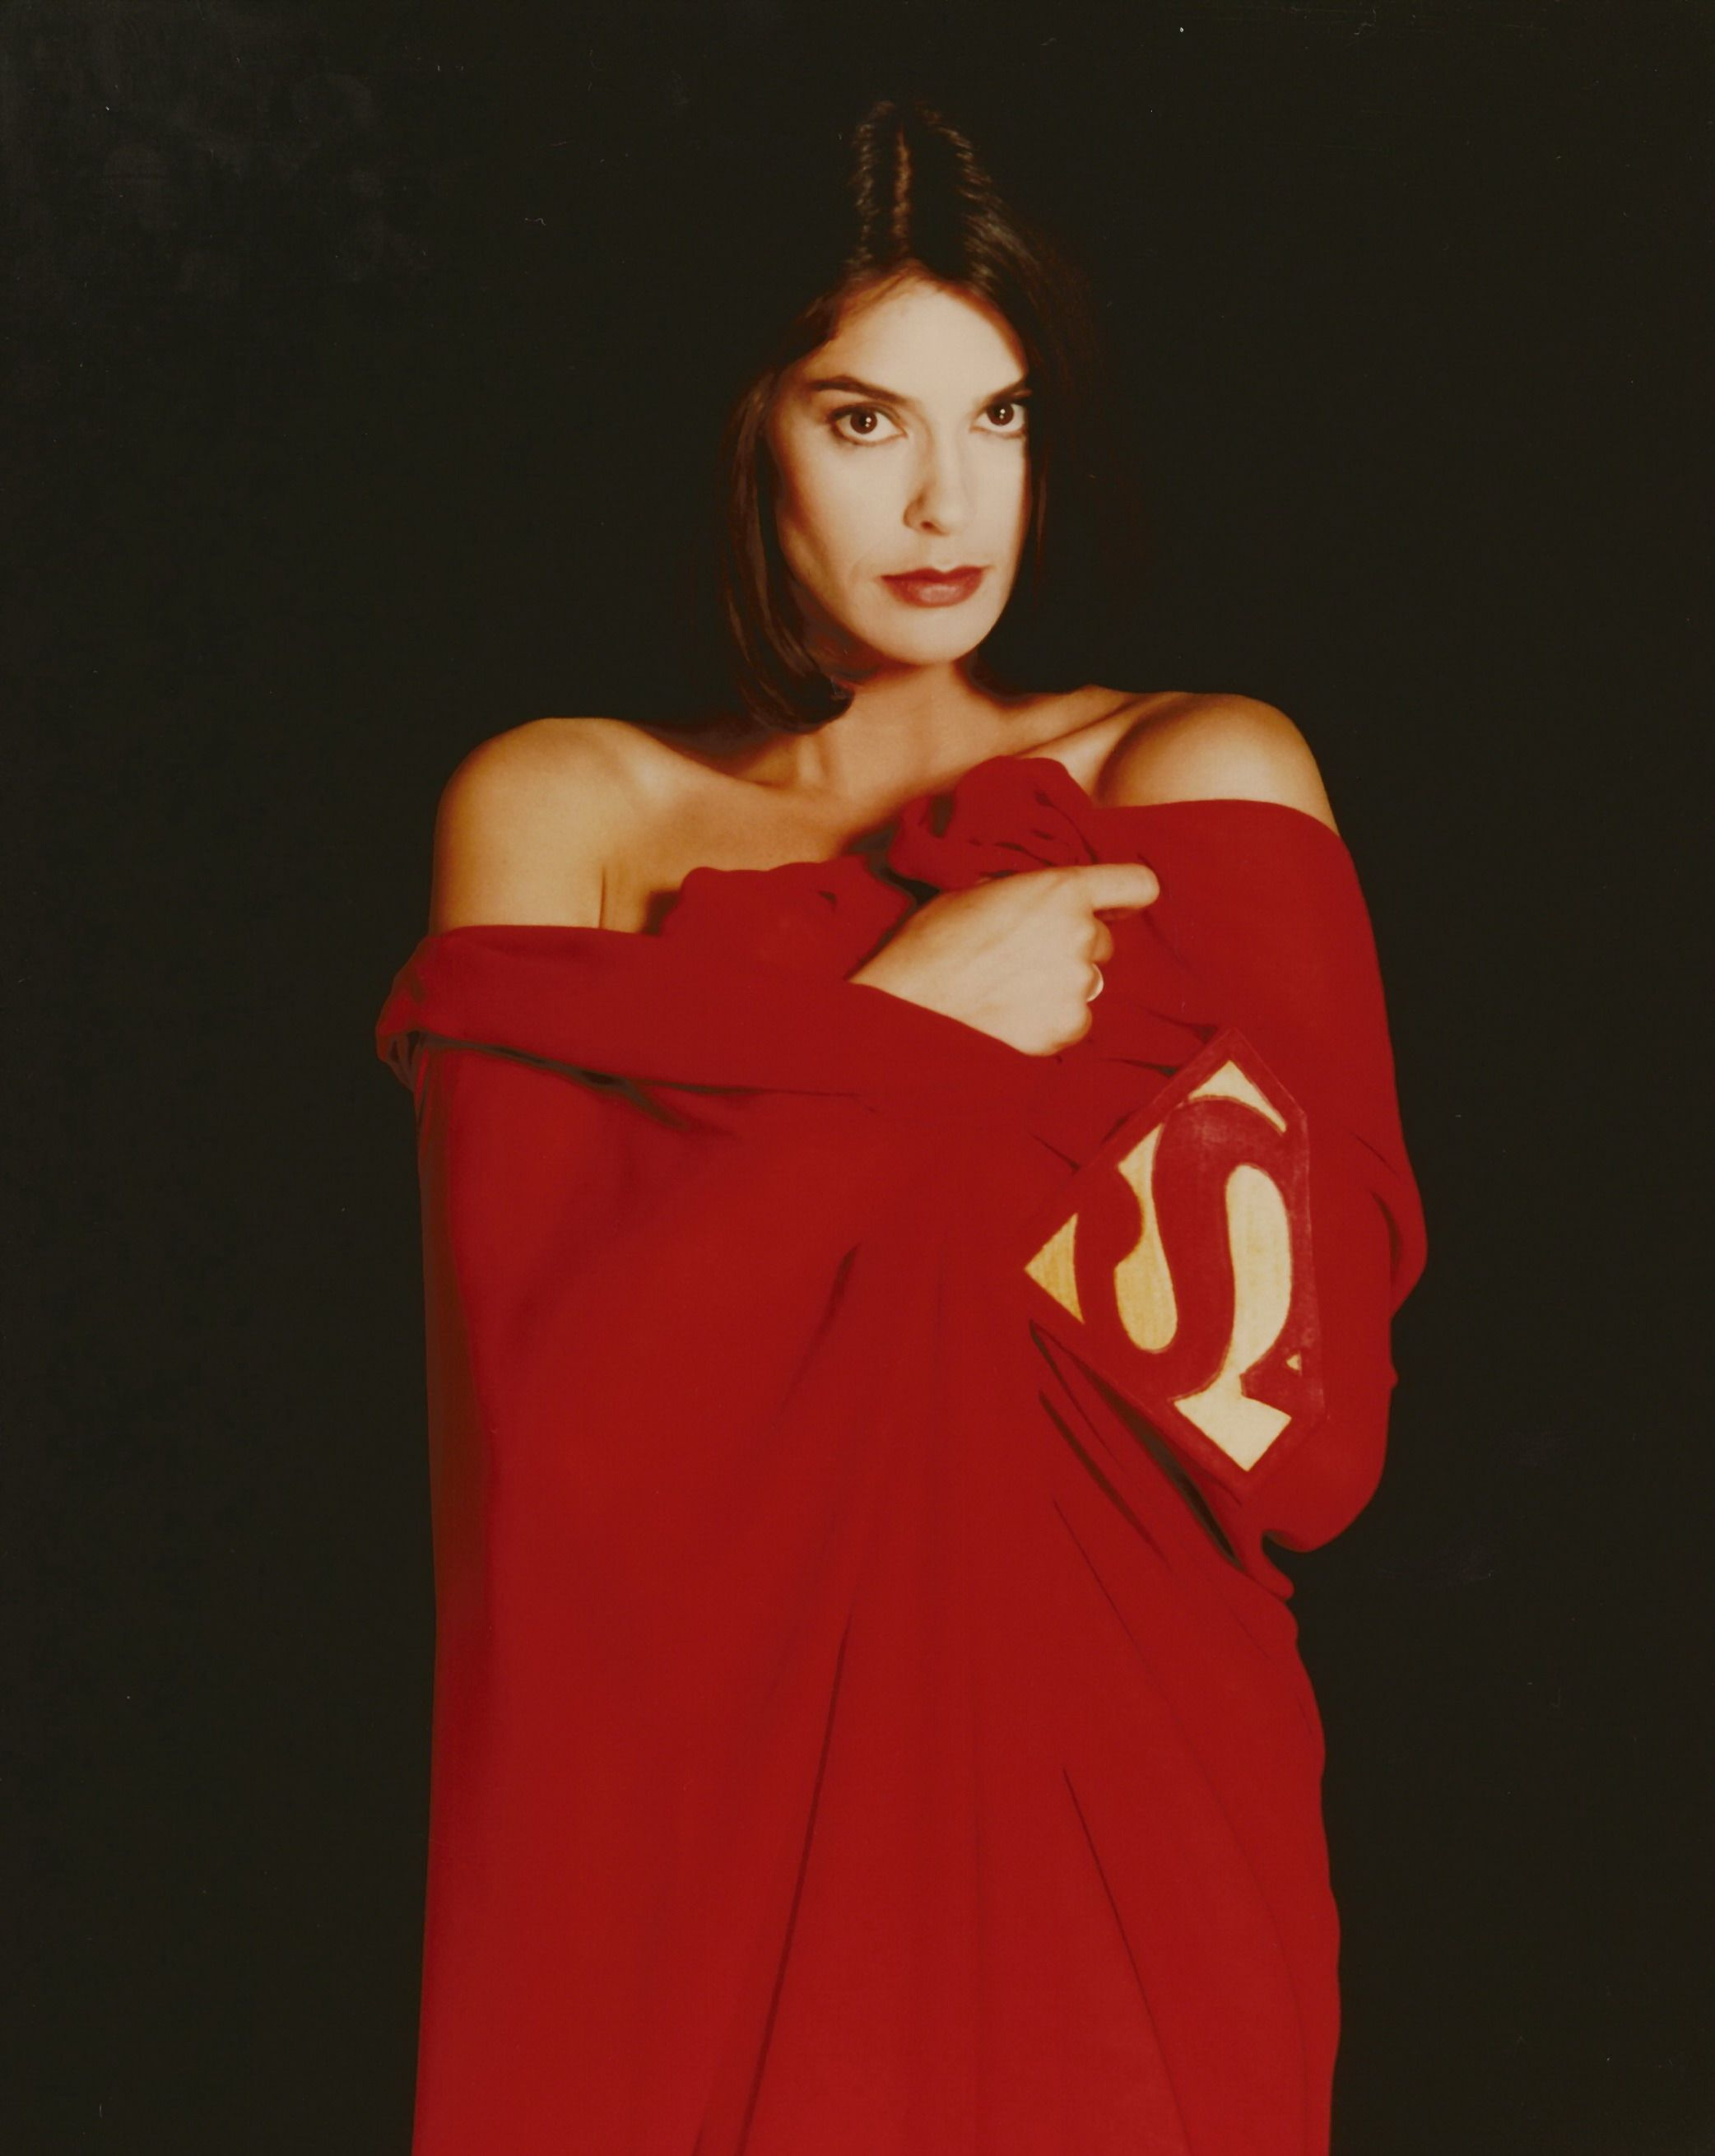 TERI HATCHER as Lois Lane. (Still the best, in looks and ...